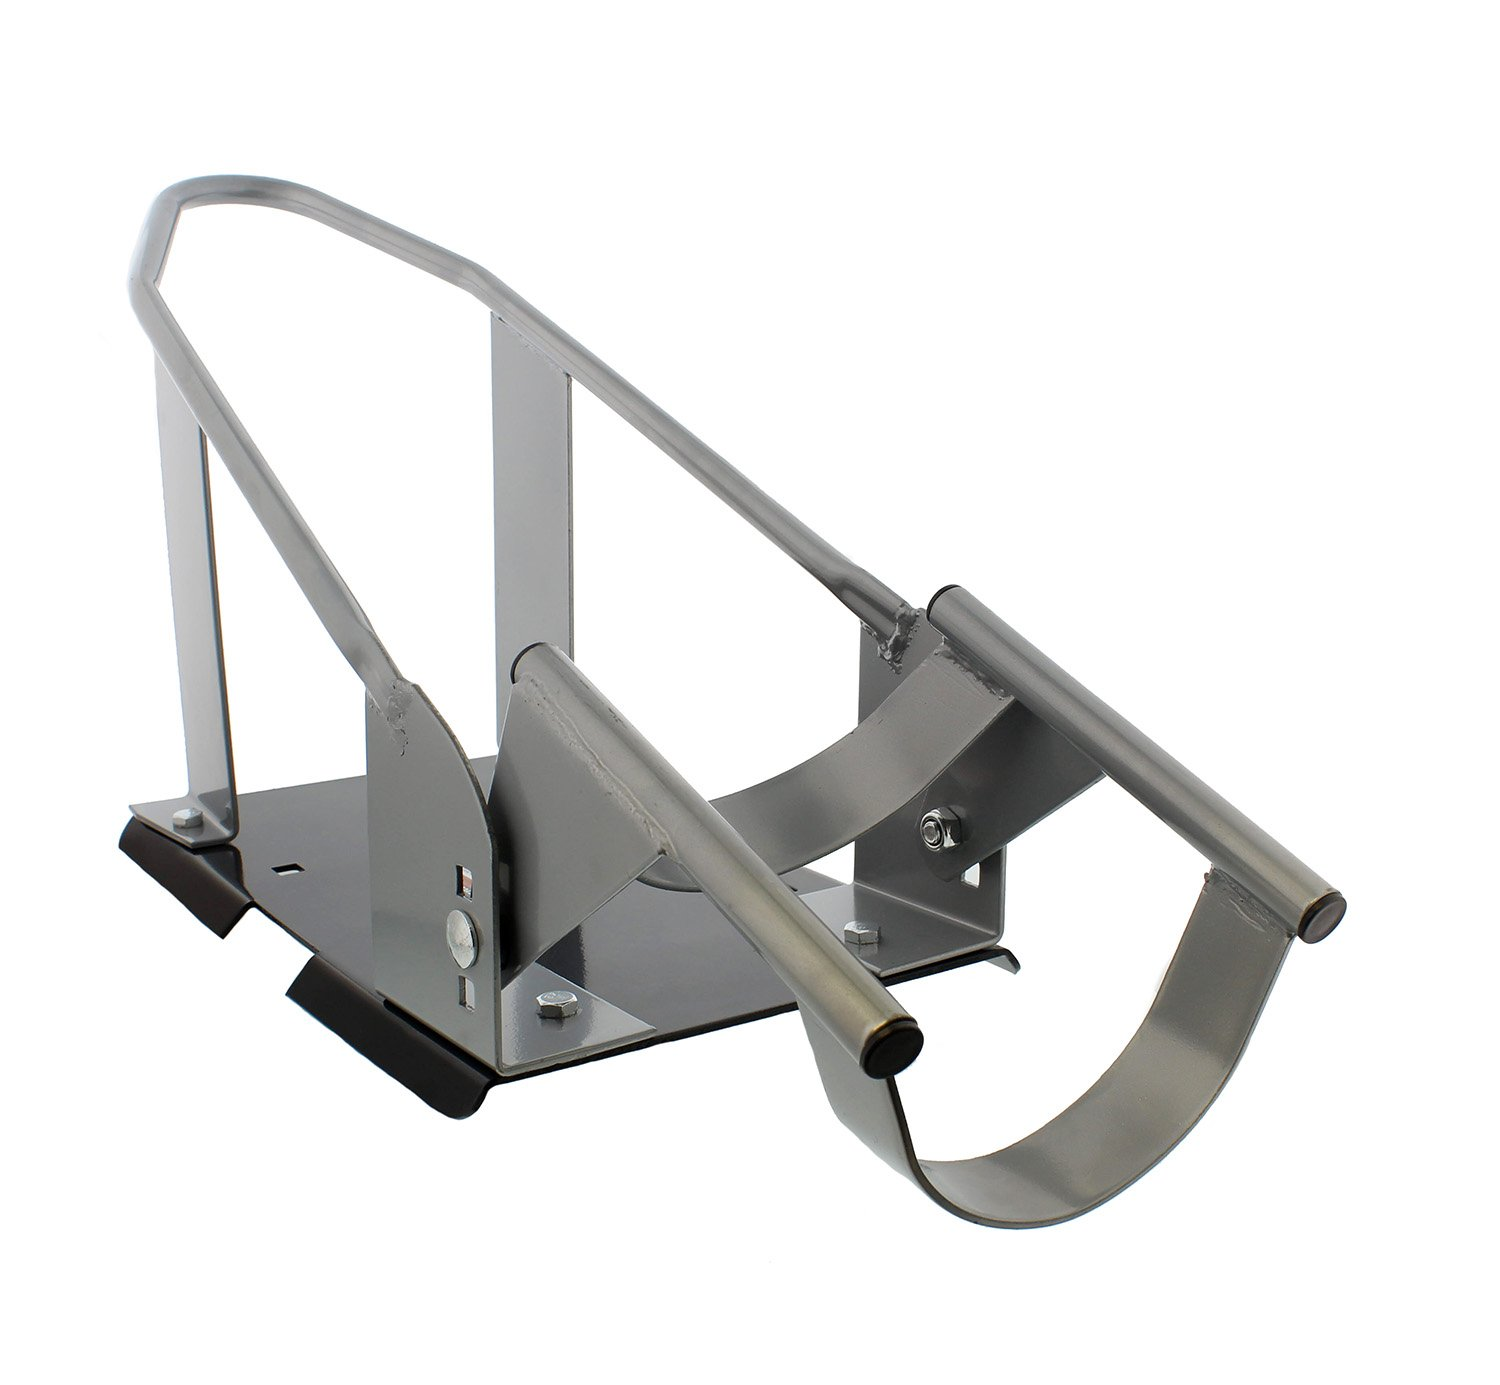 ABN Removable Trailer Wheel Chock - Universal Stopper Cradle Holder for Standard Motorcycle Bike Front Wheels by ABN